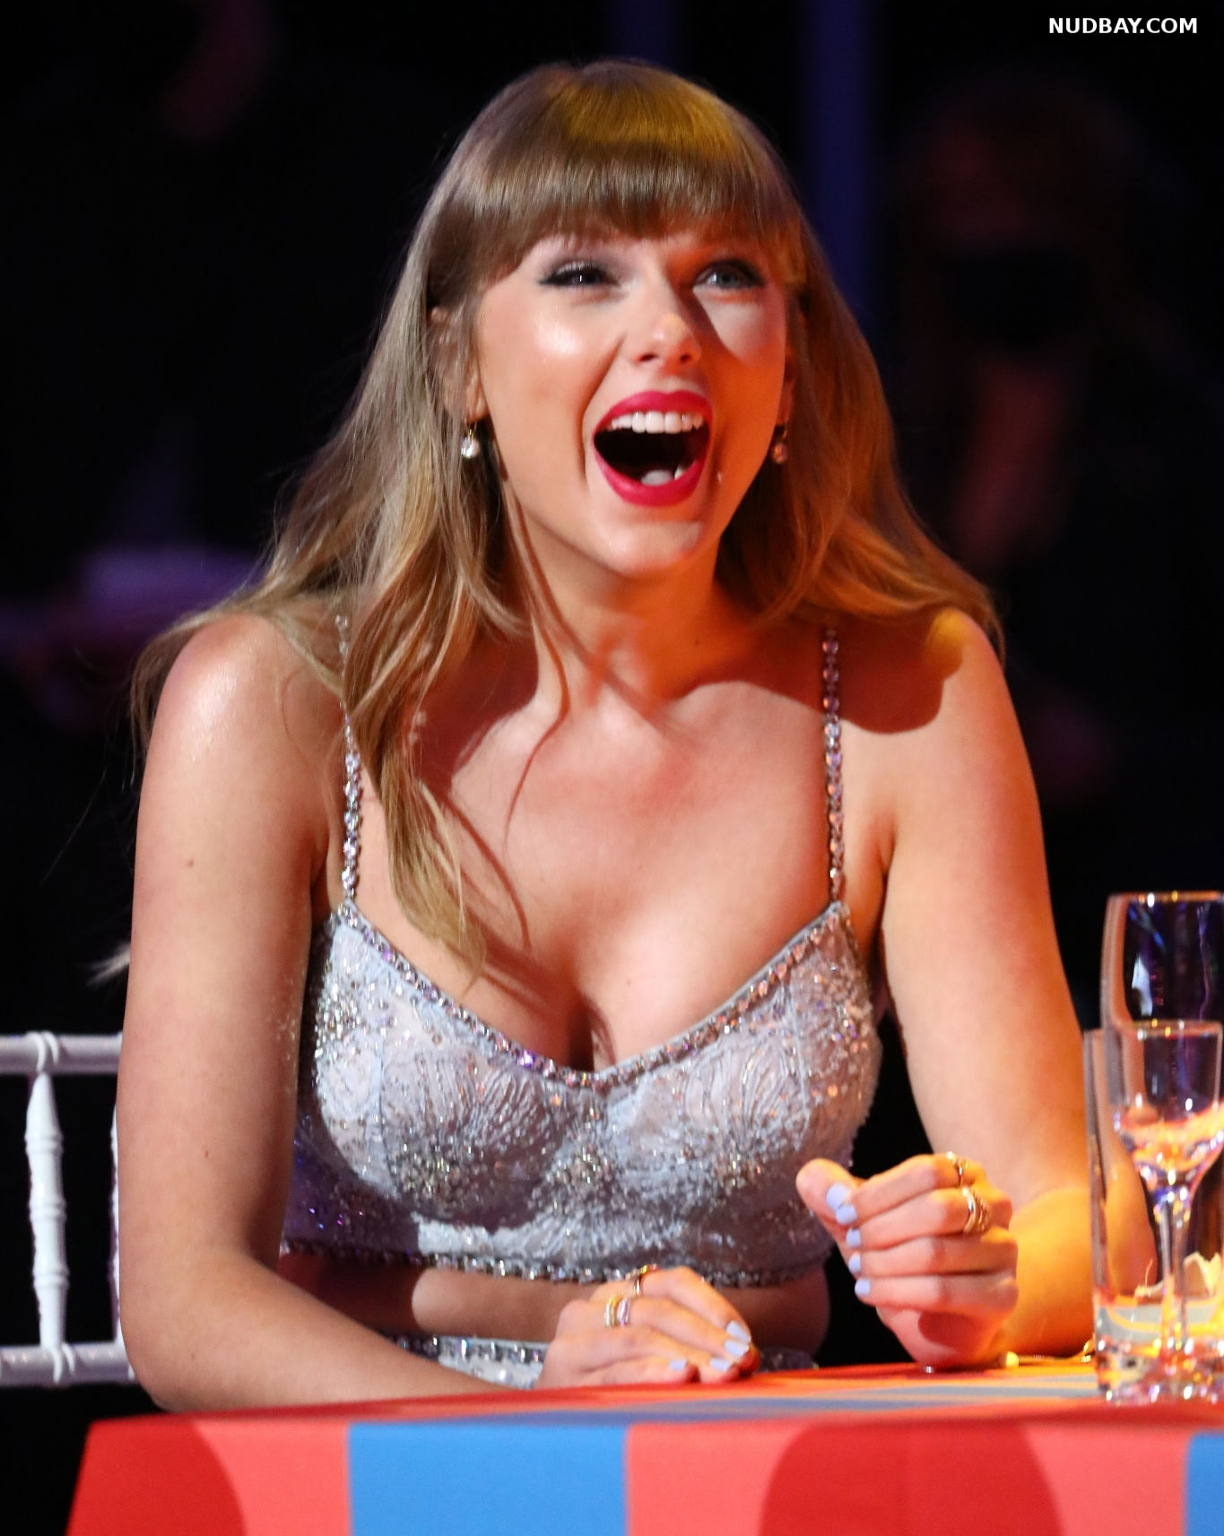 Taylor Swift boobs The BRIT Awards 2021 in London